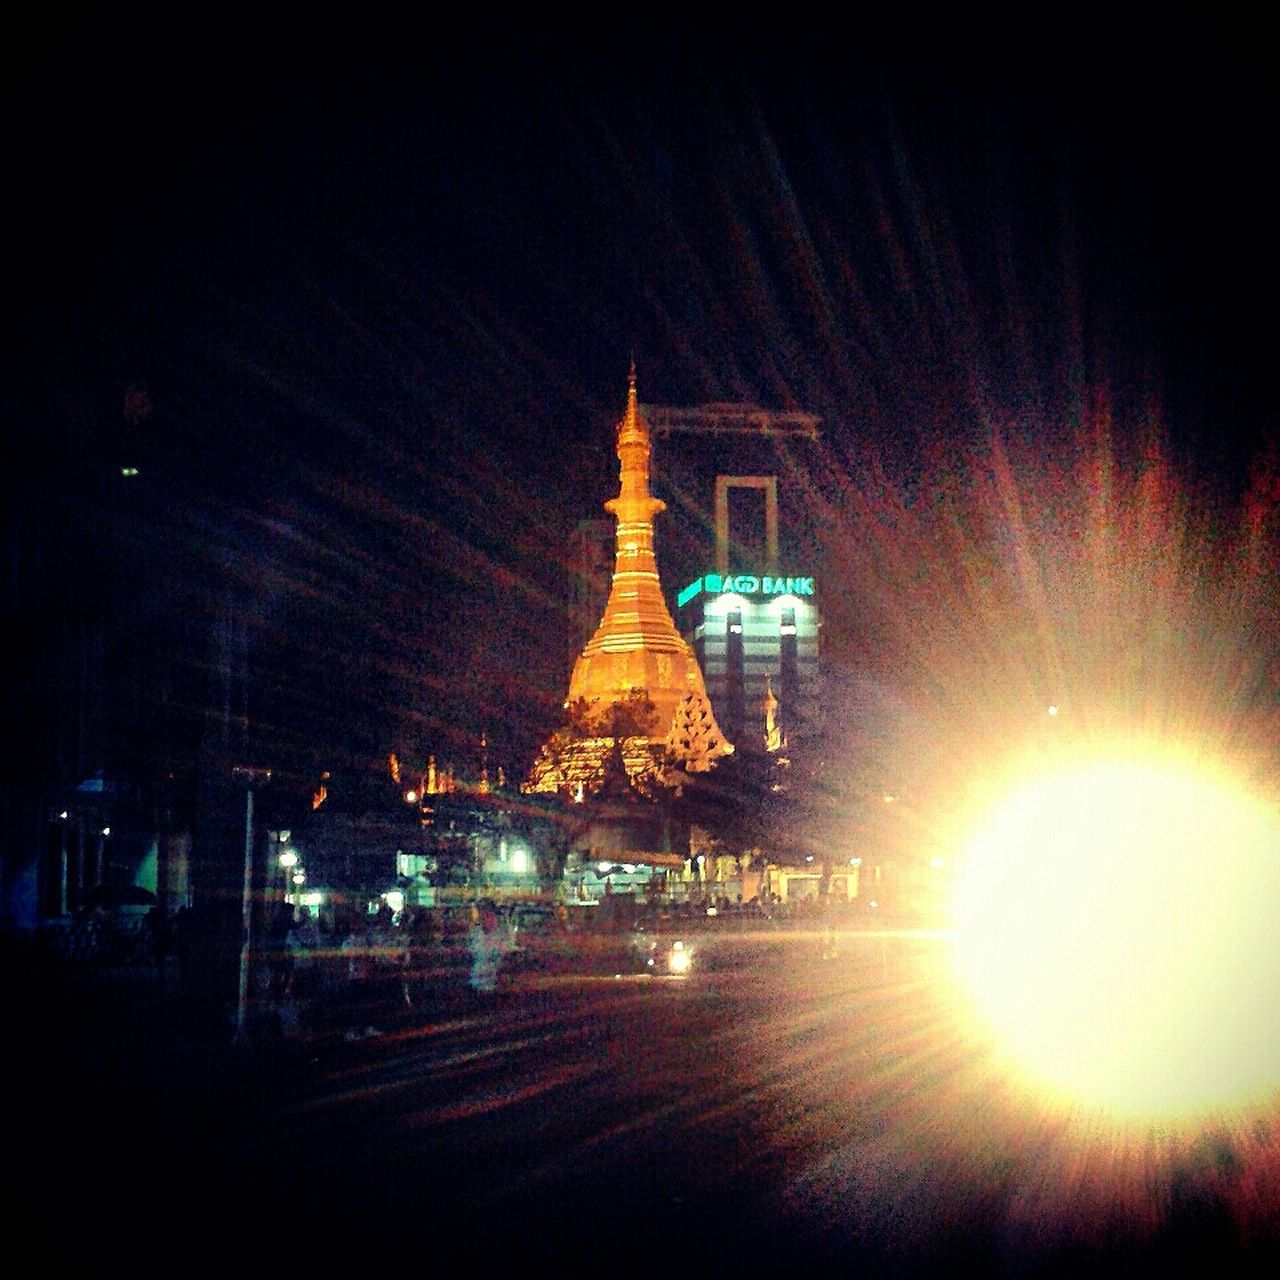 Sule pagoda at night, Yangon, Myanmar Street Photography